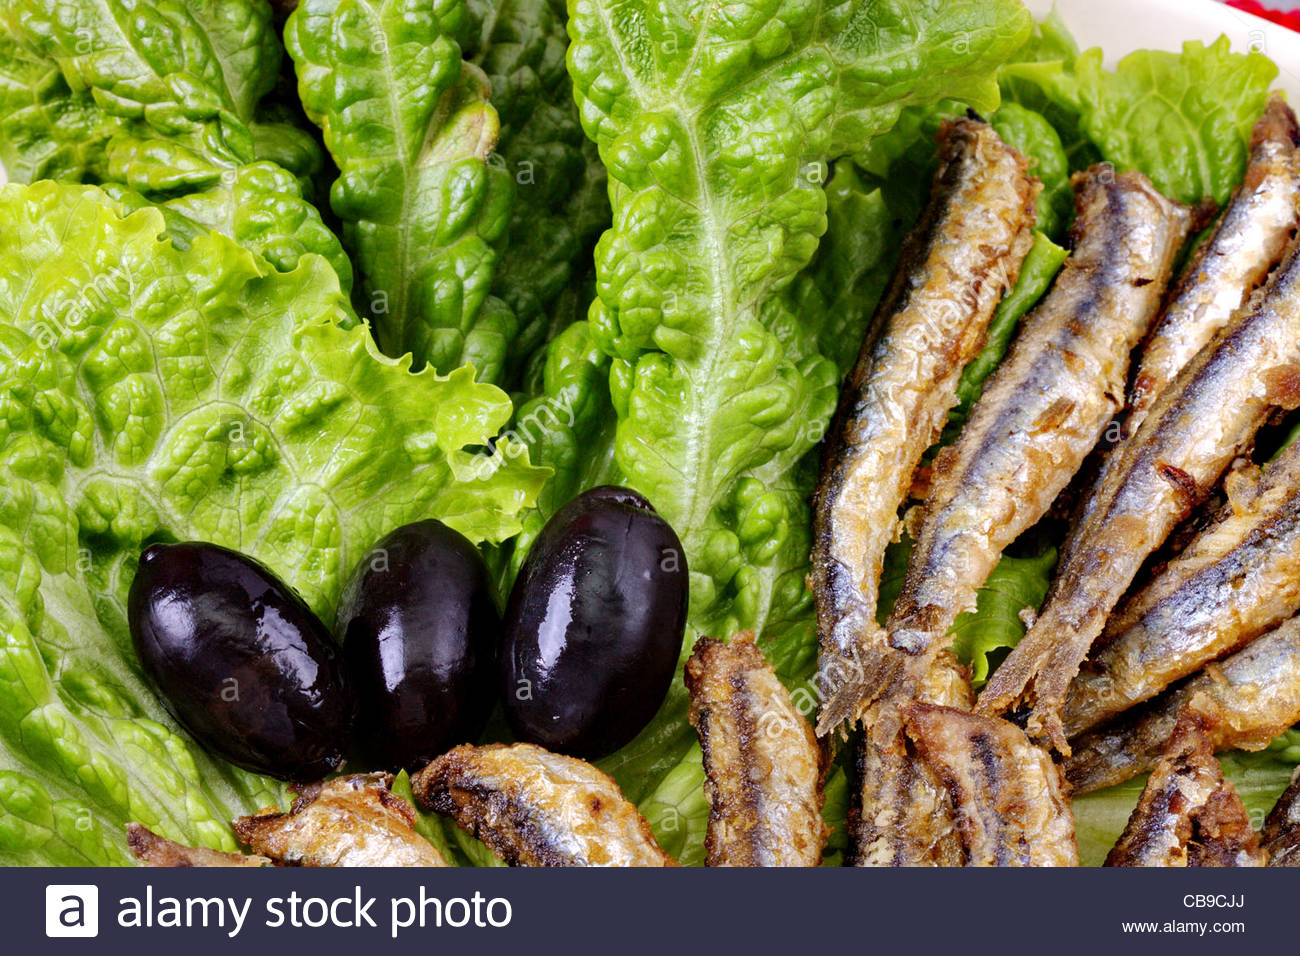 fried anchovies on lettuce leaves with olives - Stock Image